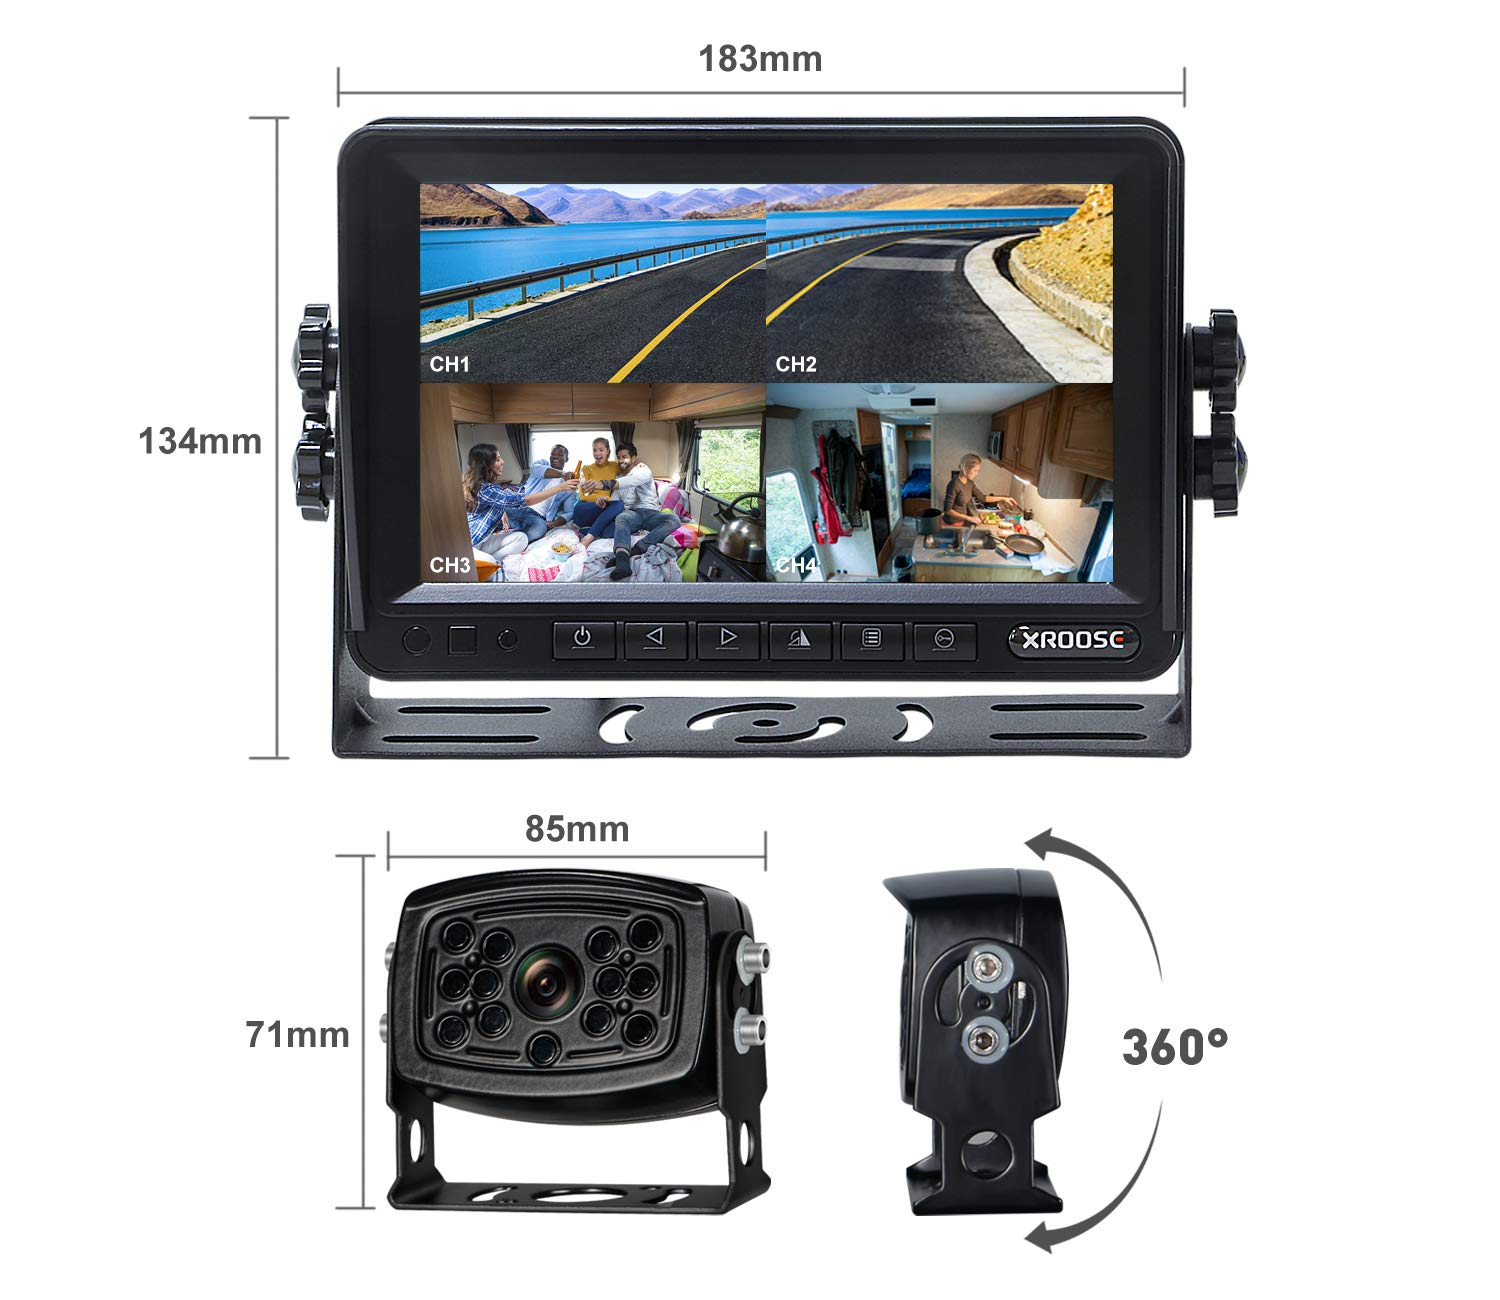 Wireless Backup Camera with Monitor System Split Screen for RV Rearview Reversing Back Camera No Interface IP69 Waterproof + Big 7'' Wireless Monitor for Truck Trailer Heavy Box Truck Motorhome ... by Xroose (Image #2)